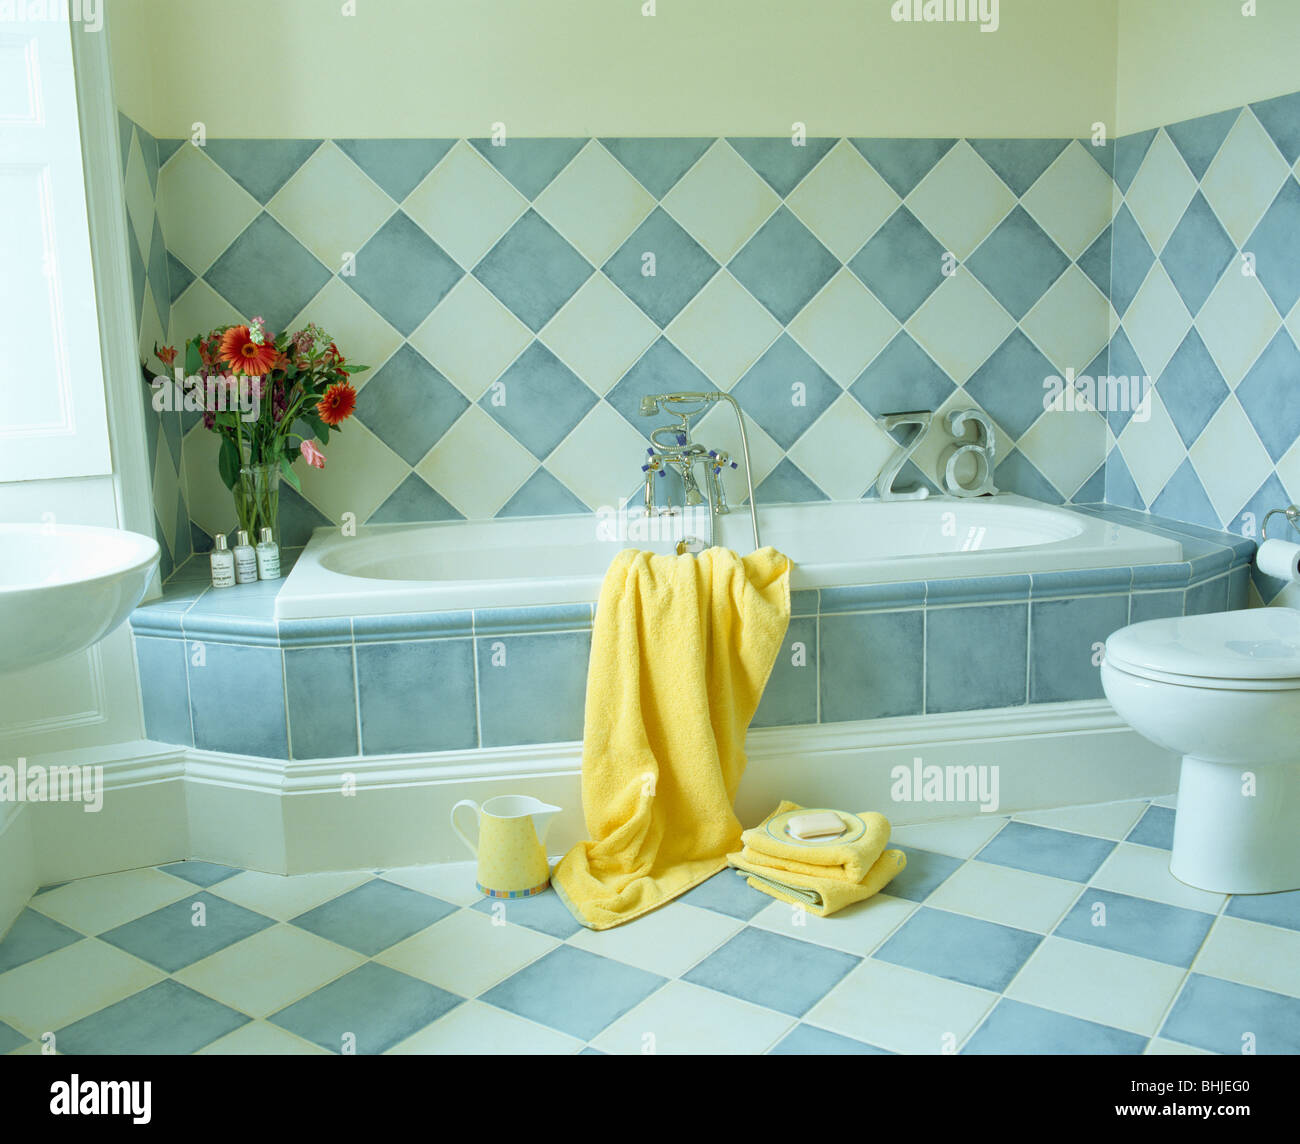 Tiling Towel Wall White Stock Photos & Tiling Towel Wall White Stock ...